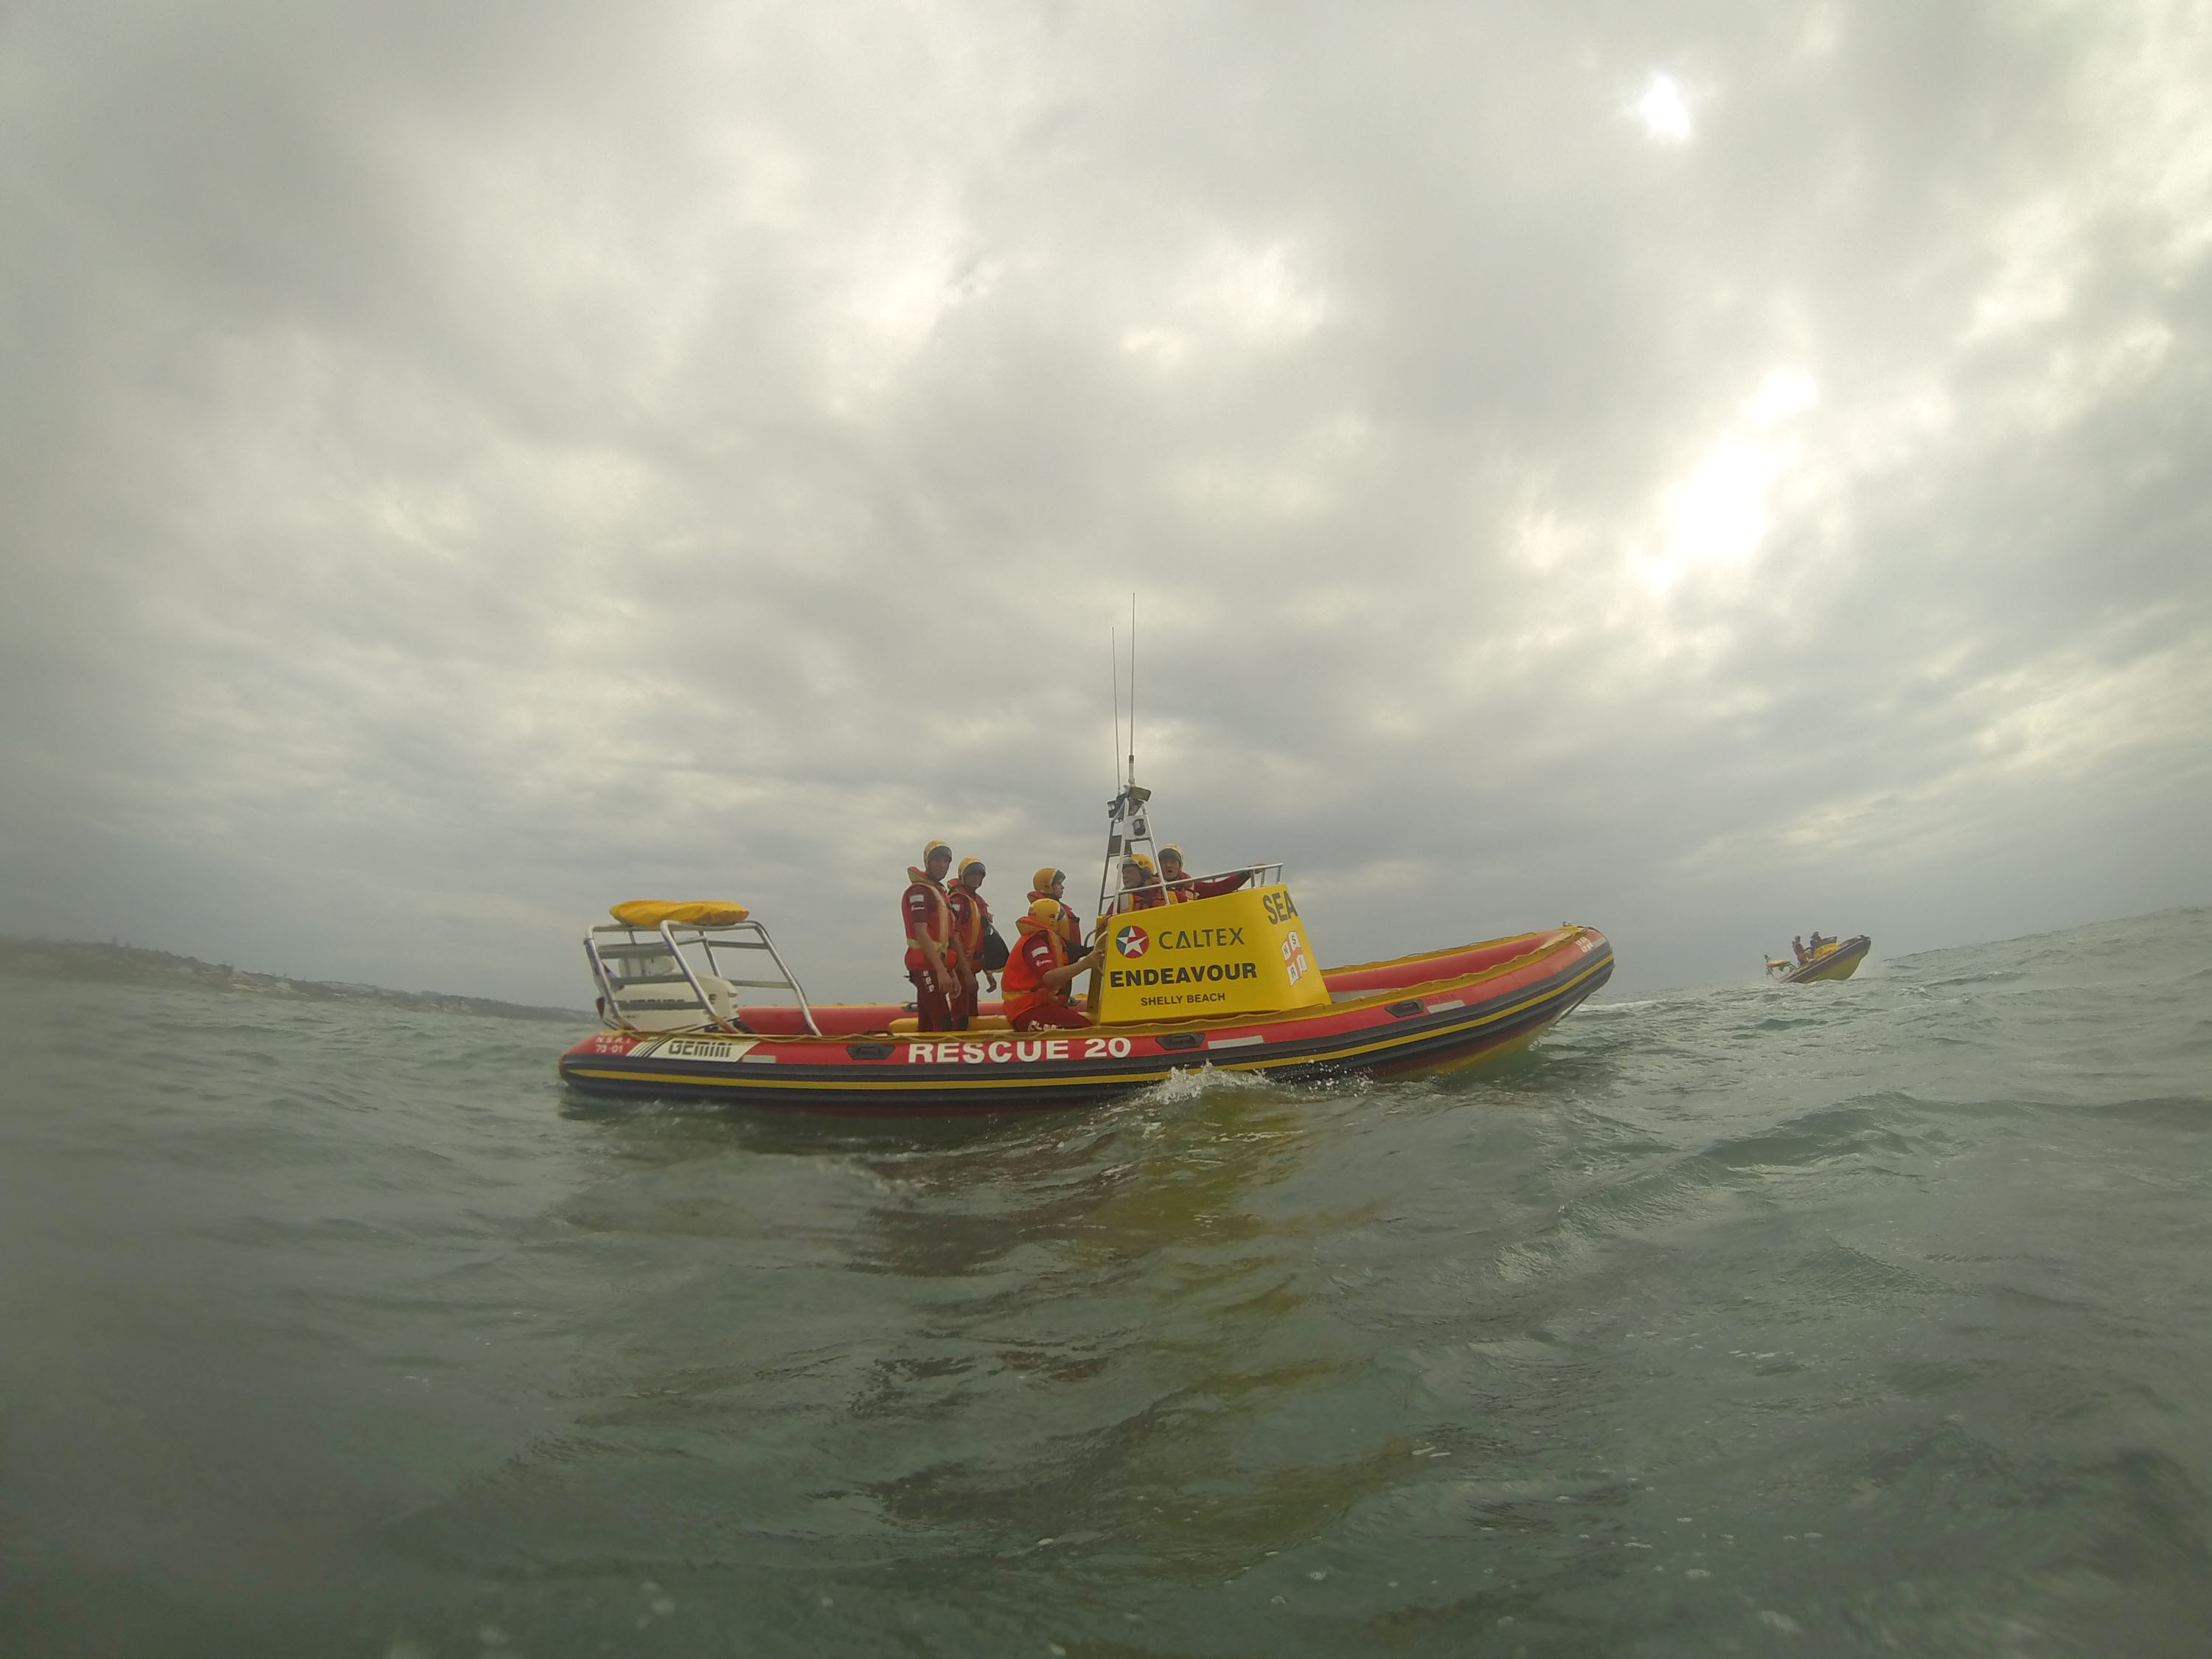 Caltex Endeavour with Caltex Challenger II in the background during a training exercise off Margate in less than ideal weather conditions.